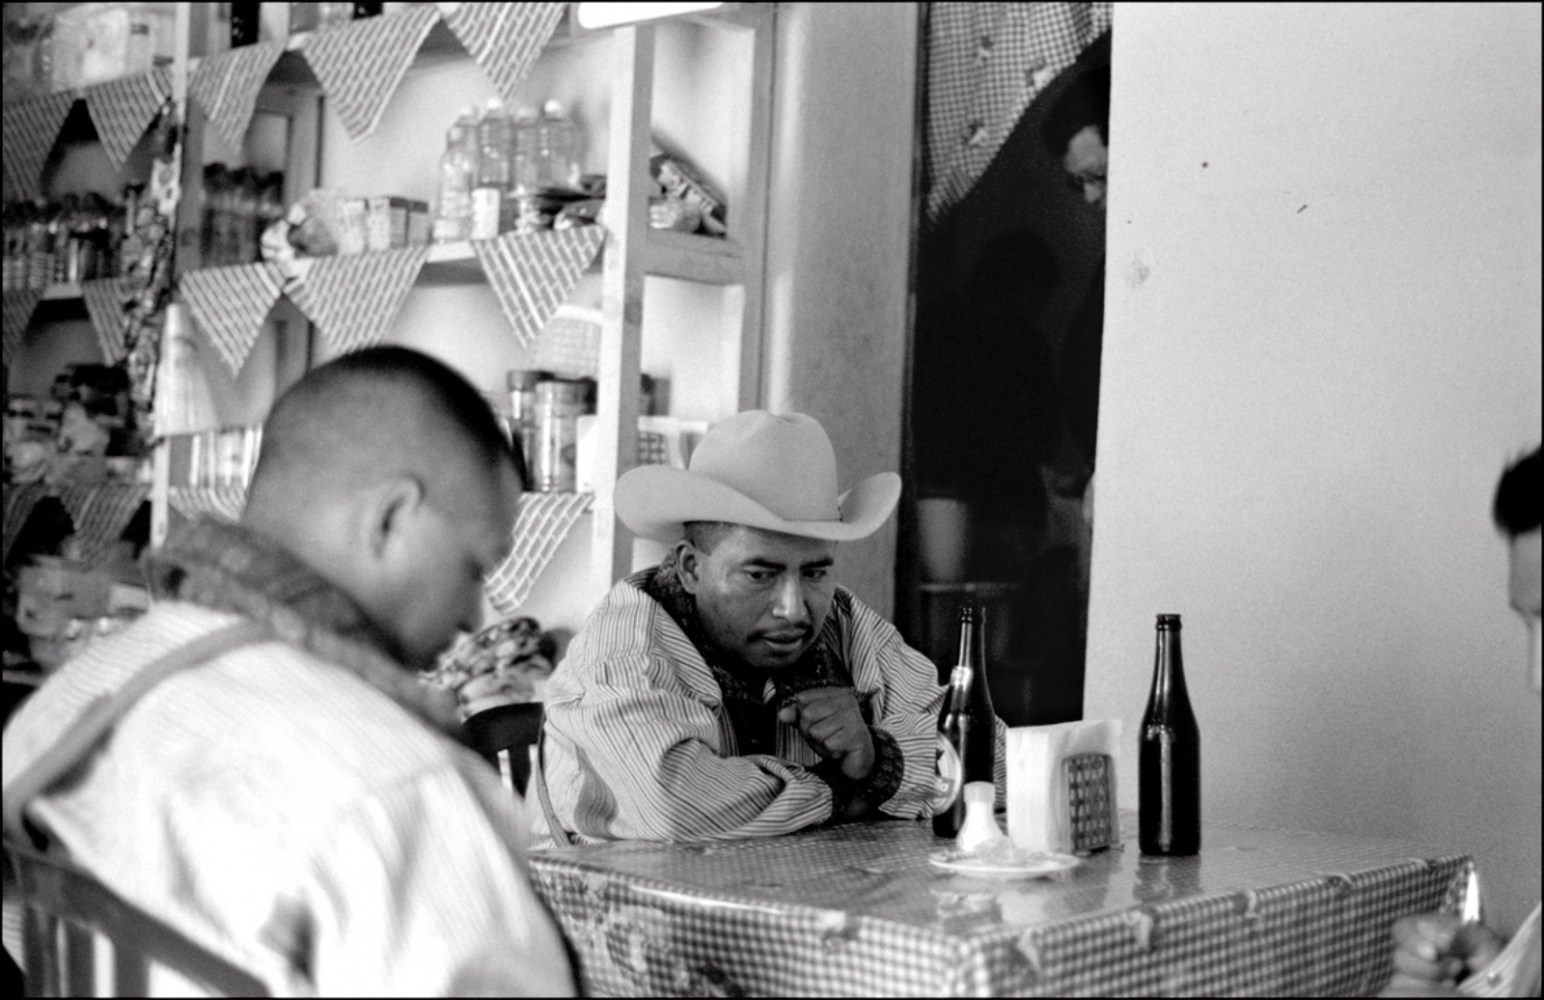 Man with Hat and Friend, Chiantla, Guatemala, April 2006